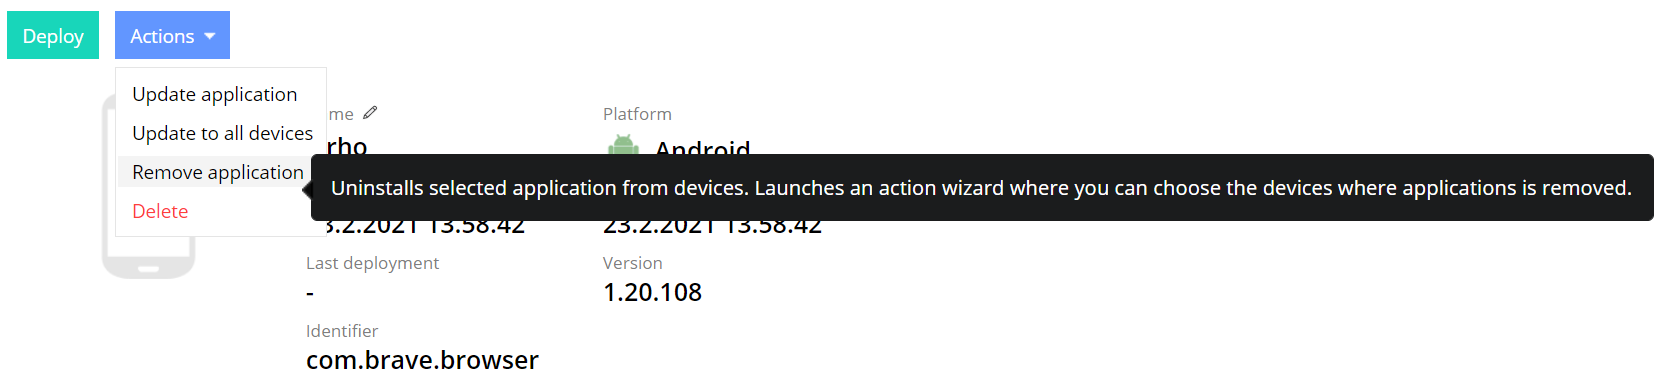 Remove application from devices